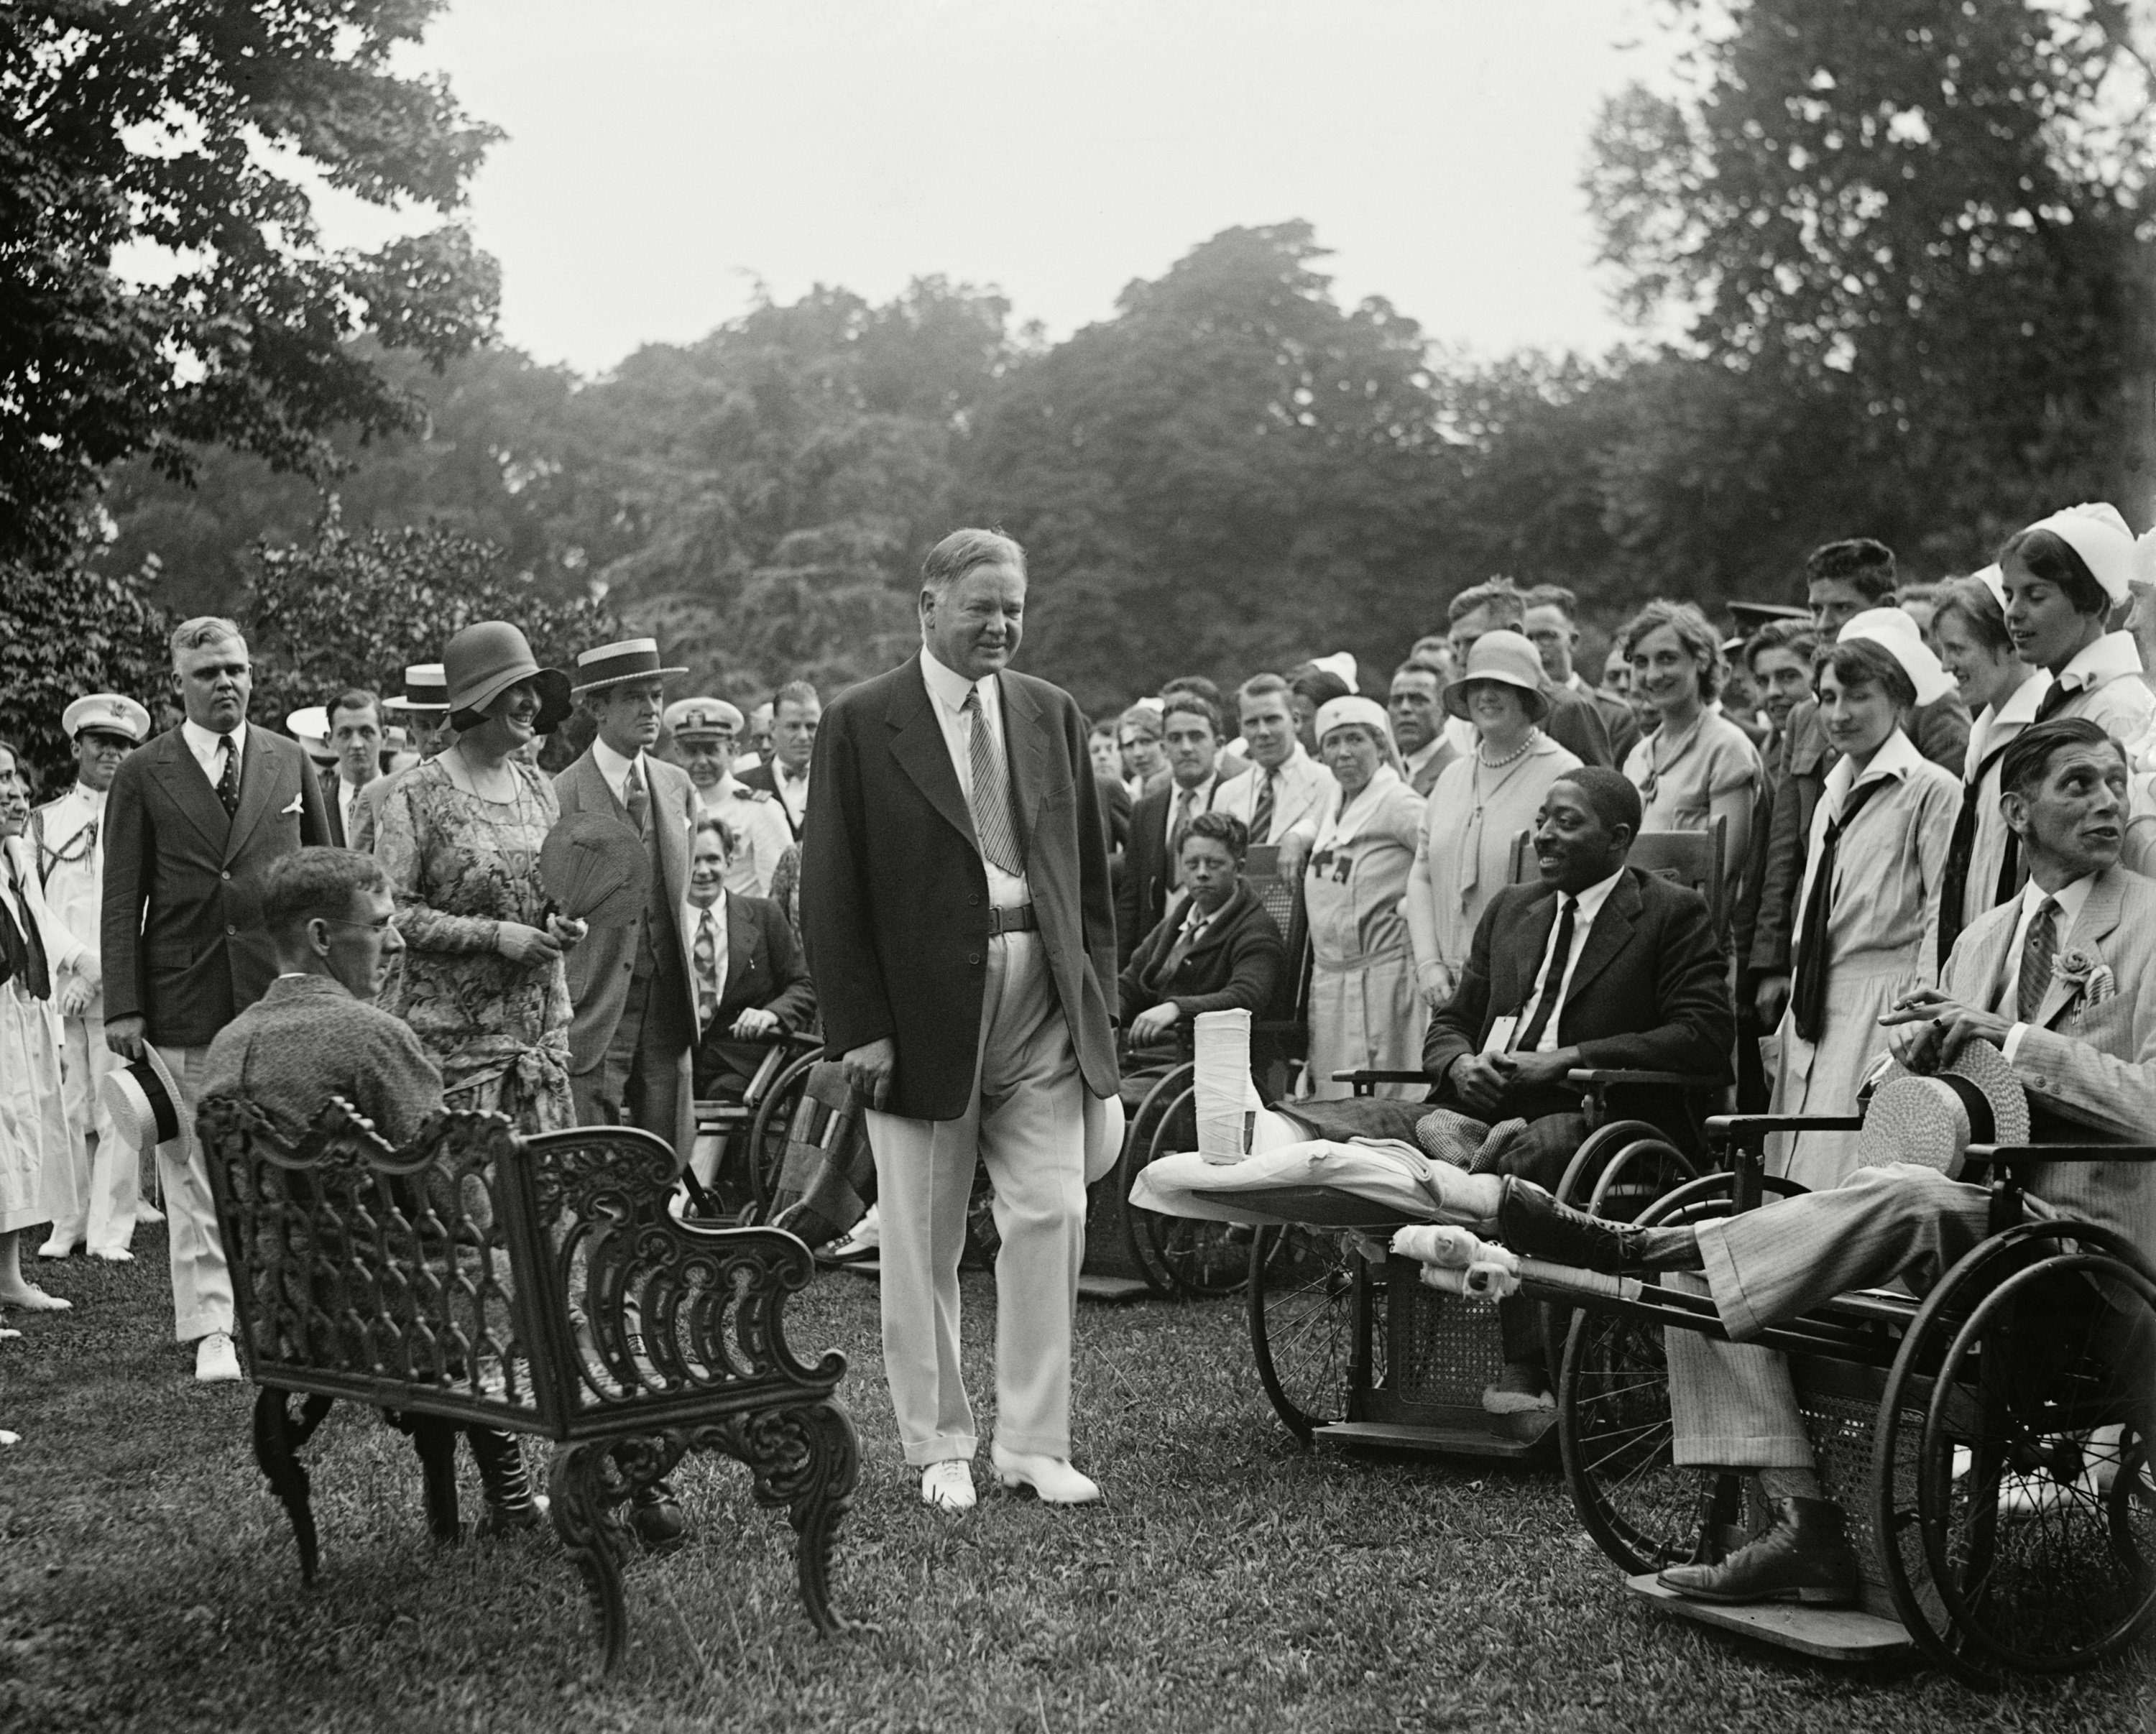 Mandatory Credit: Photo by Everett/Shutterstock (10112329a) President Herbert Hoover and the First Lady at a White House reception for Veterans, June 27, 1929. The inclusion of an African American in a photographed event was likely requested by Hoover